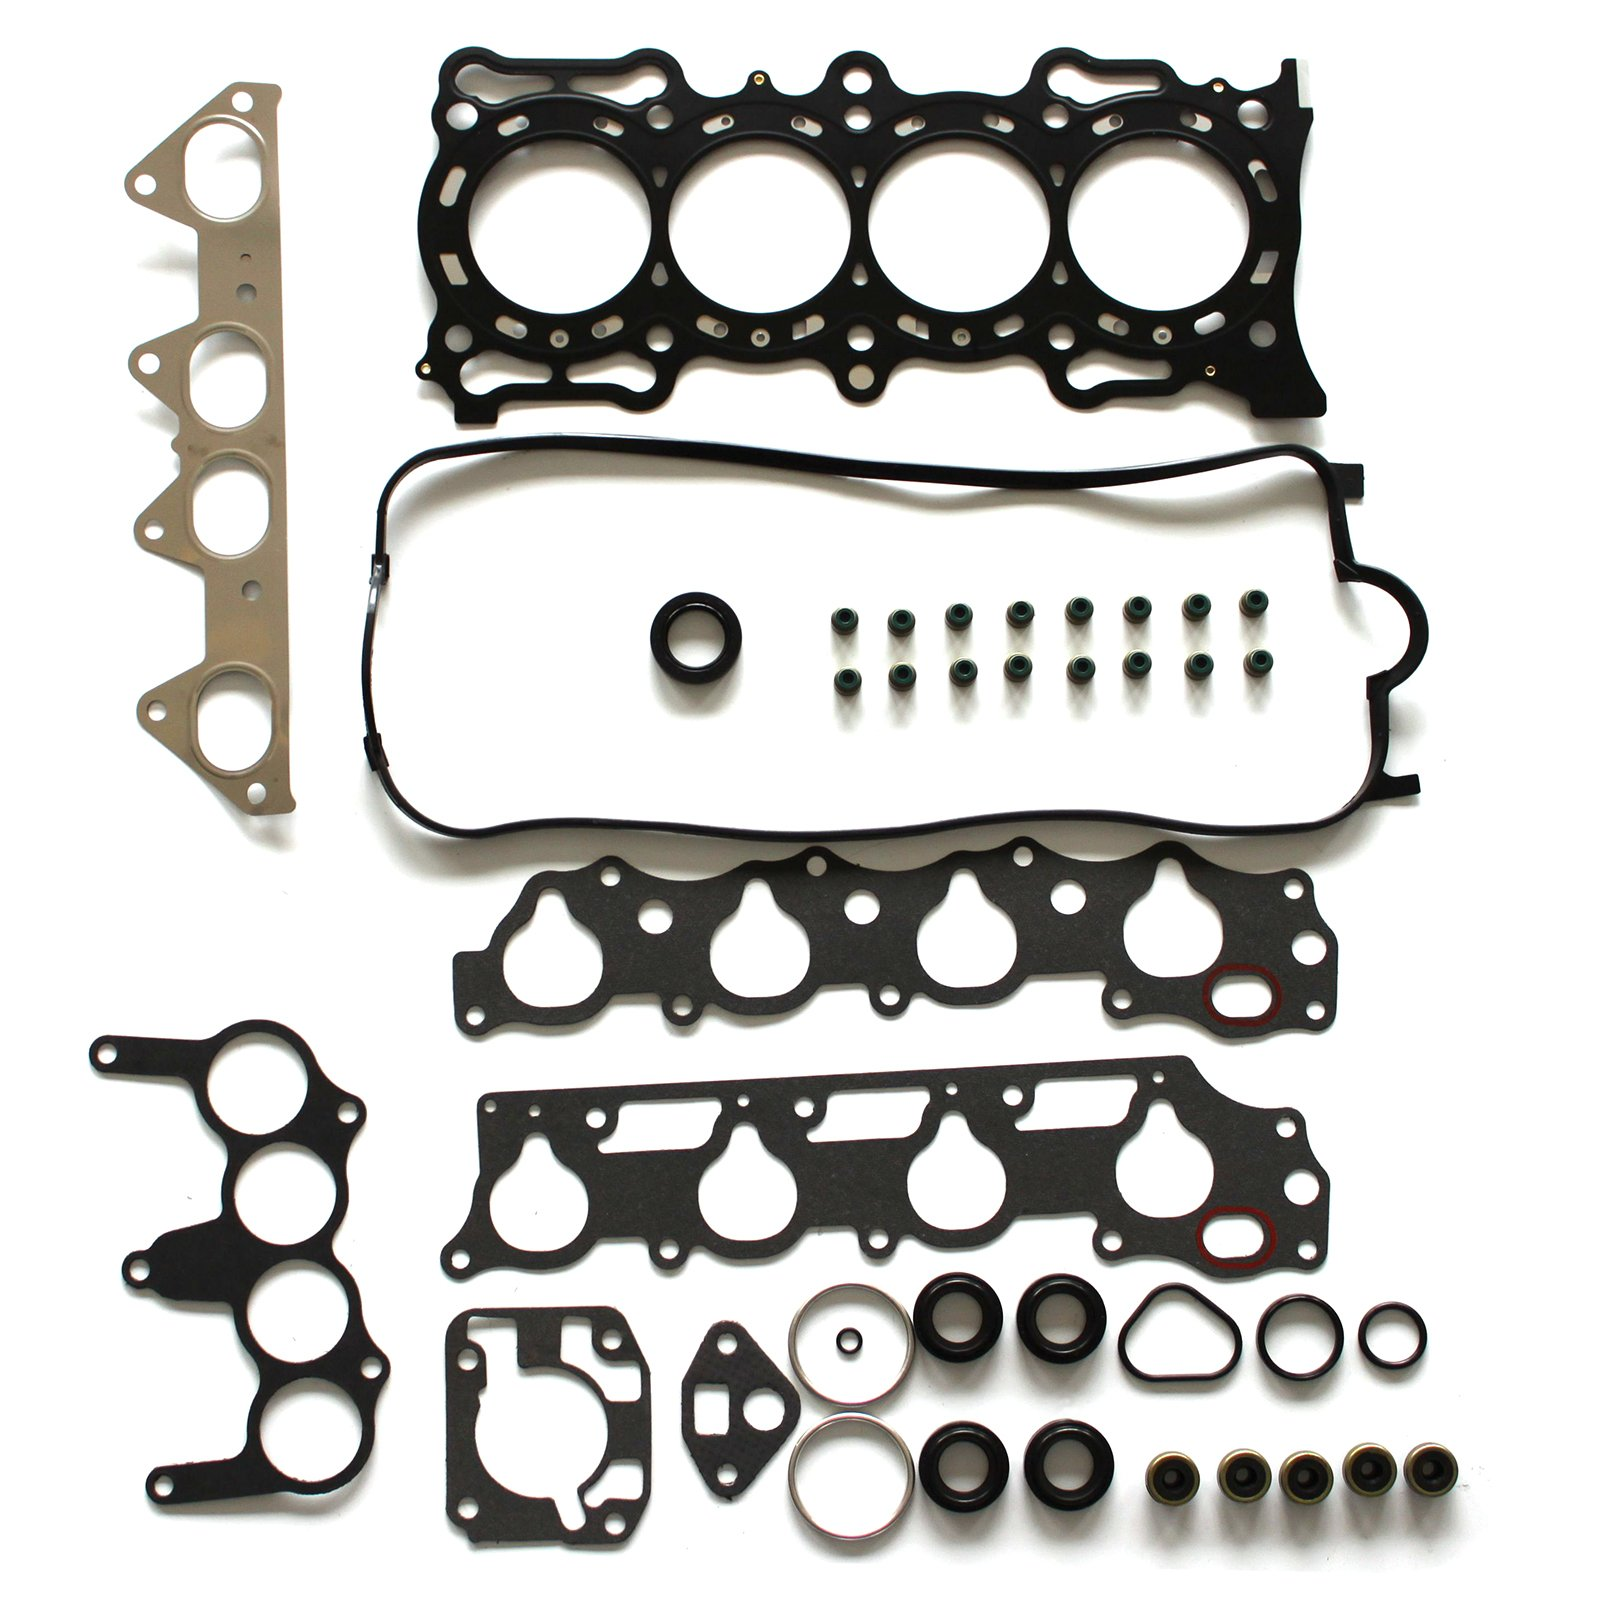 ECCPP Compatible fit for Engine Head Gasket Set for 98-02 Honda Accord Odyssey 2.3L F23A1 F23A5 F23A7 Engine Head Gaskets Kit by ECCPP